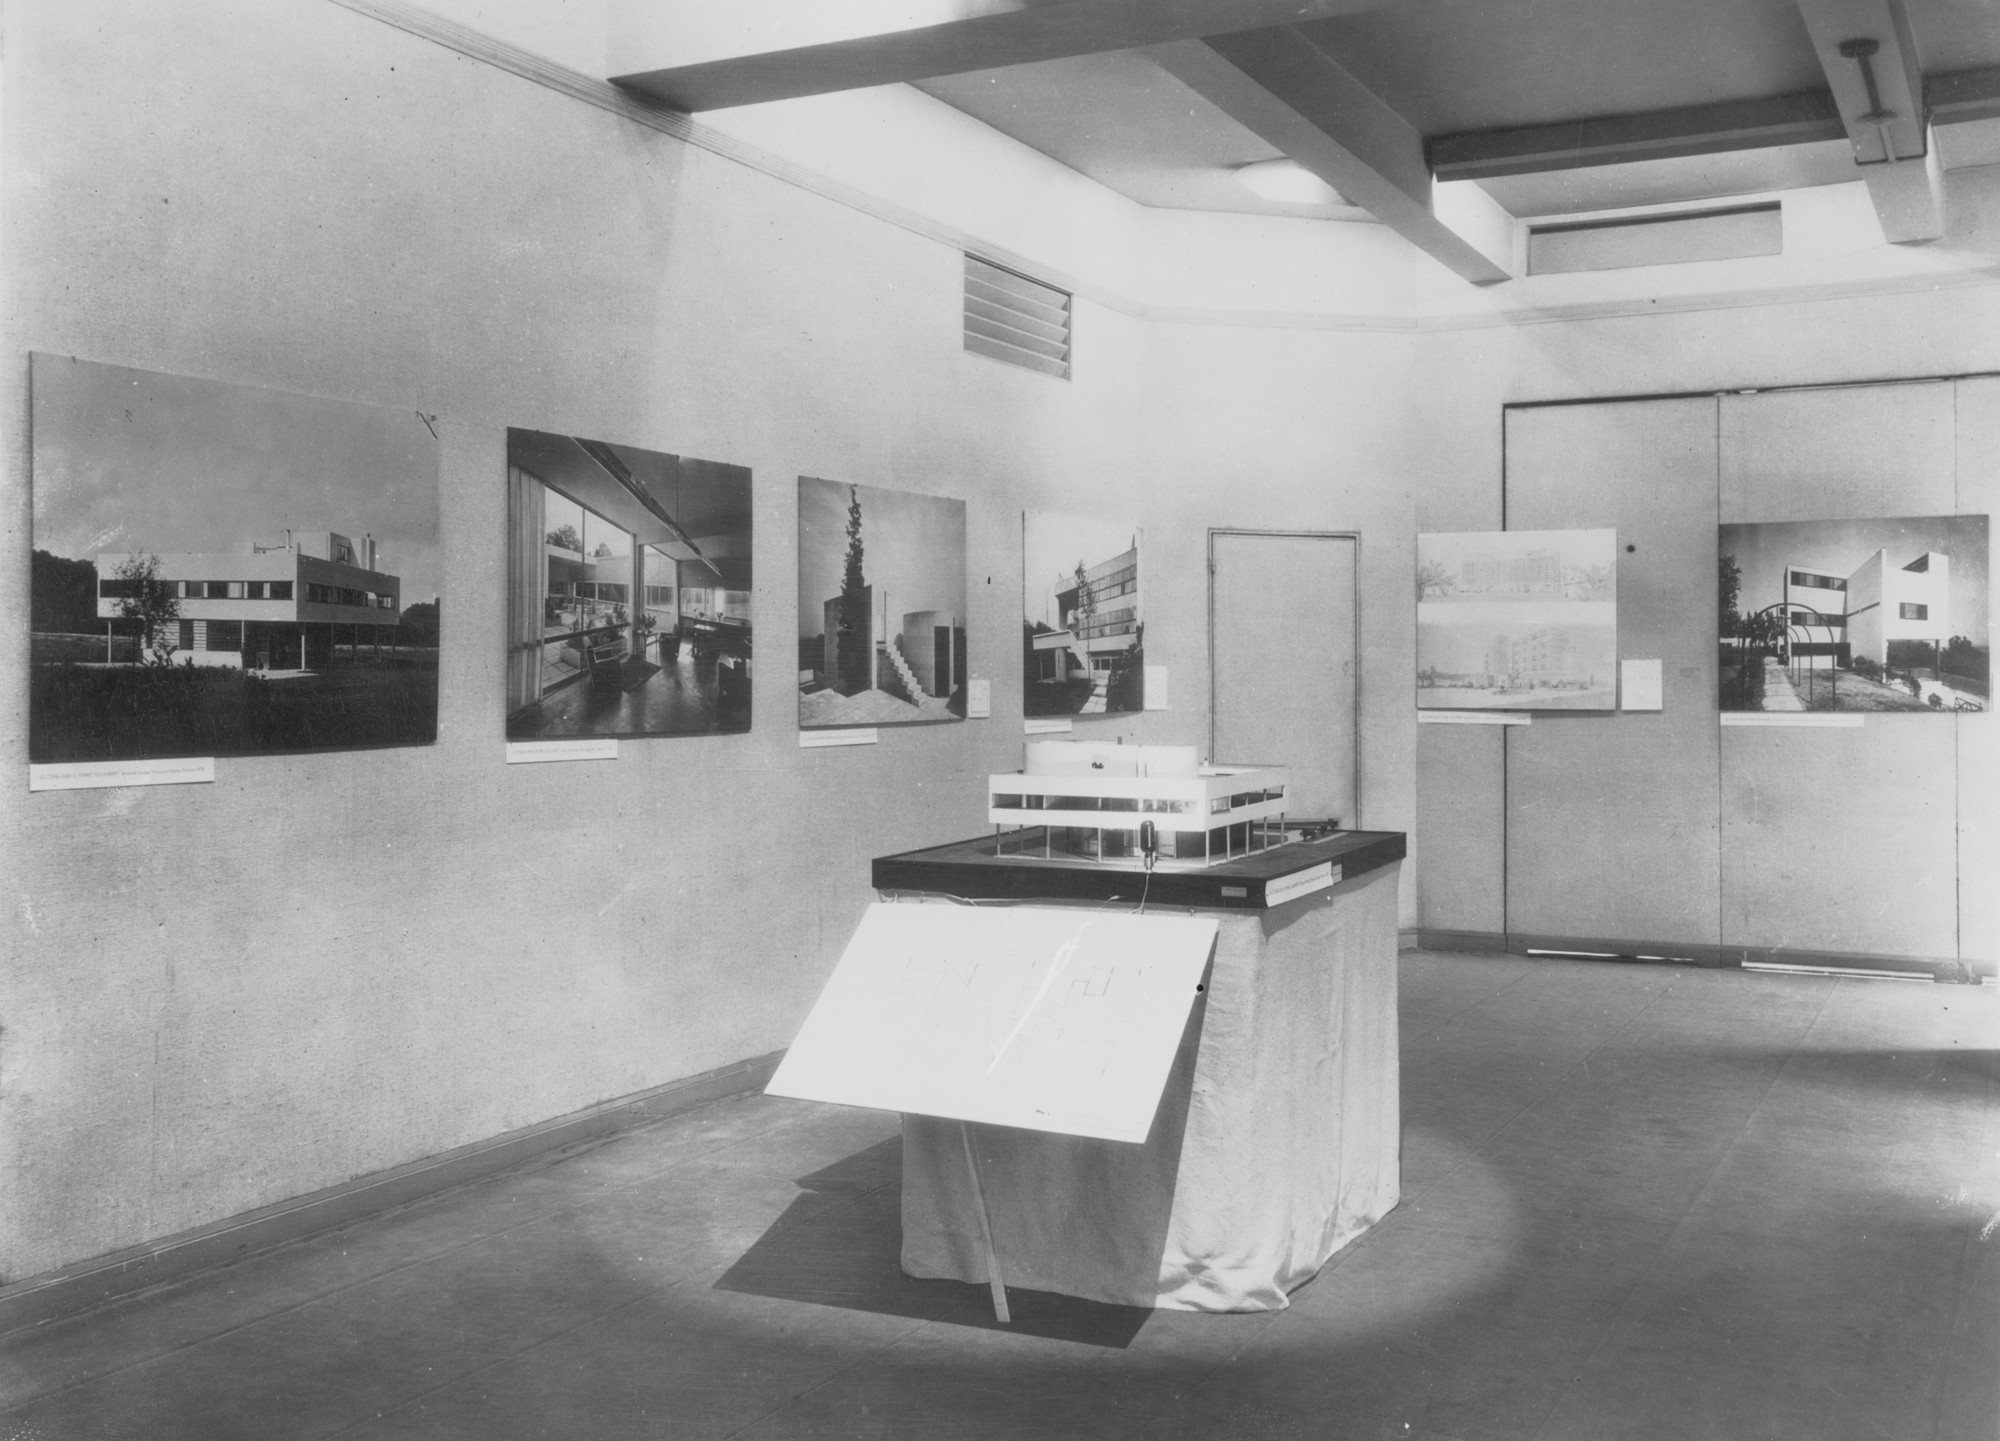 Out of Site in Plain View: A History of Exhibiting Architecture since 1750, Model of Le Corbusier's Villa Savoye from Modern Architecture: International Exhibition [MoMA Exh. #15, February 9-March 23, 1932] Photo: Modern Architecture, International Exhibition. 1932. The Museum of Modern Art, New York. Photographic Archive.